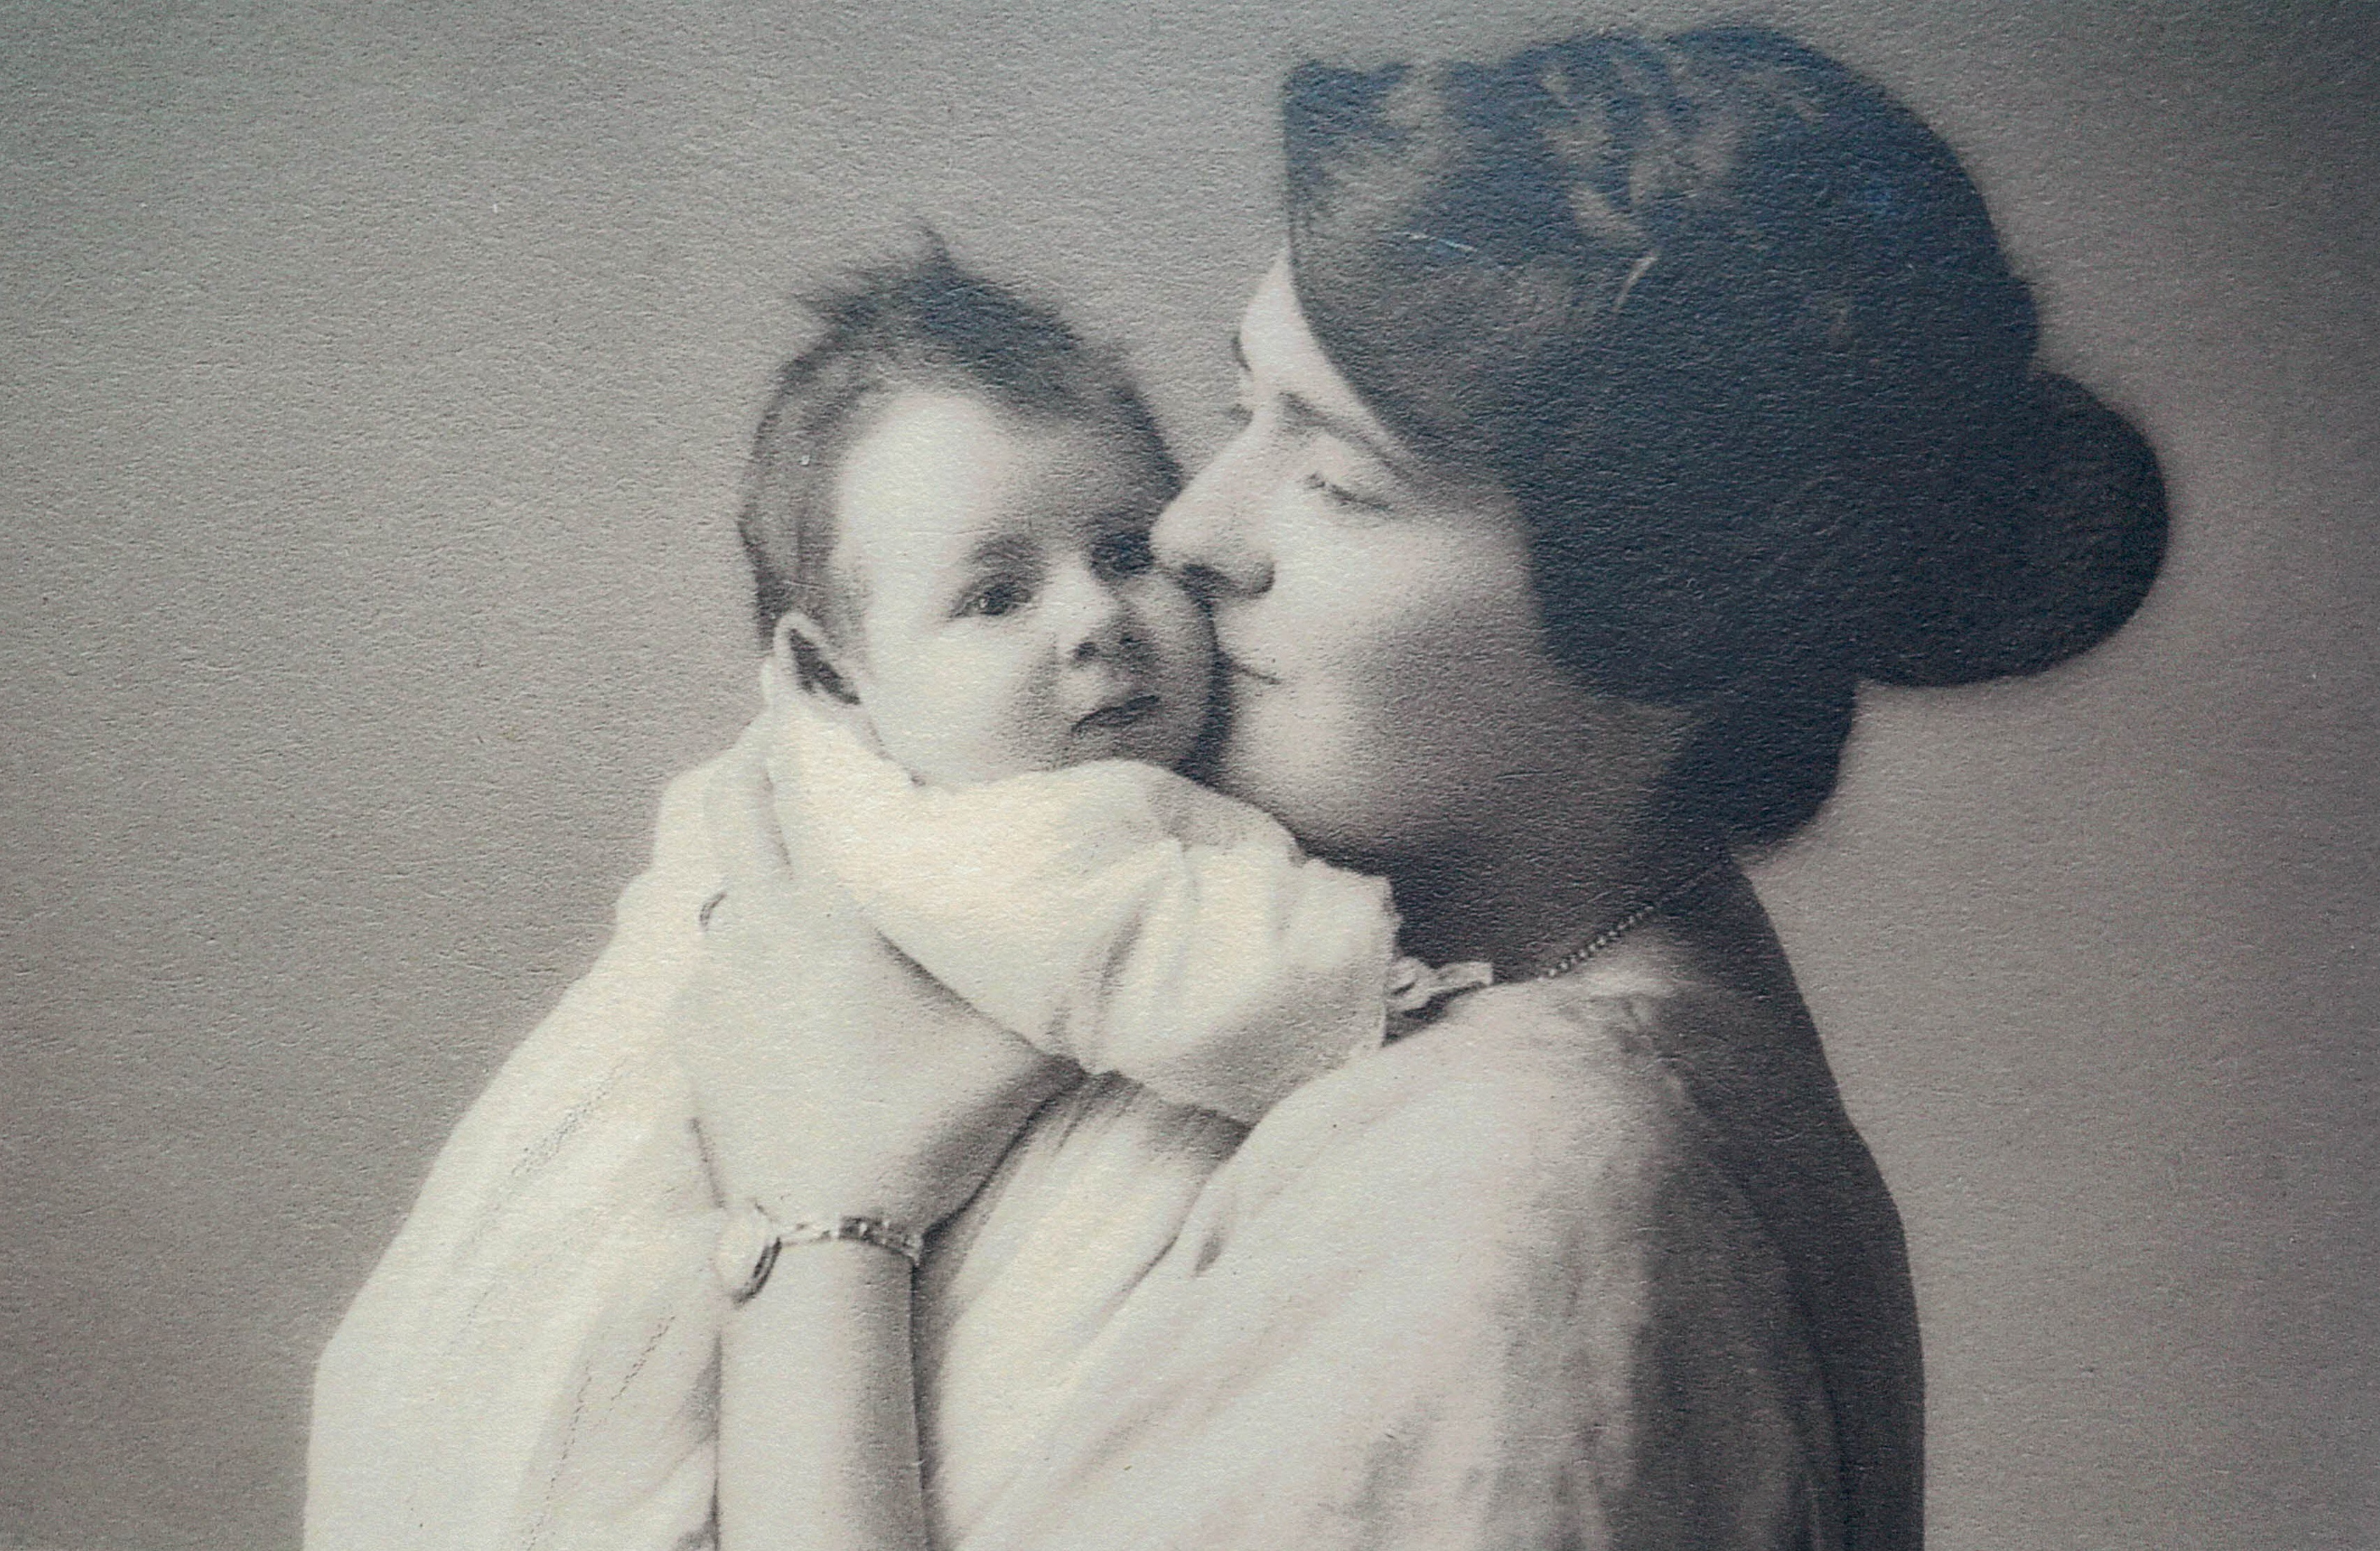 Diana Symon, whose generous donations funded the new lifeboat, pictured as a baby with her mother Norah Wortley-Talbot, after whom the boat is named.